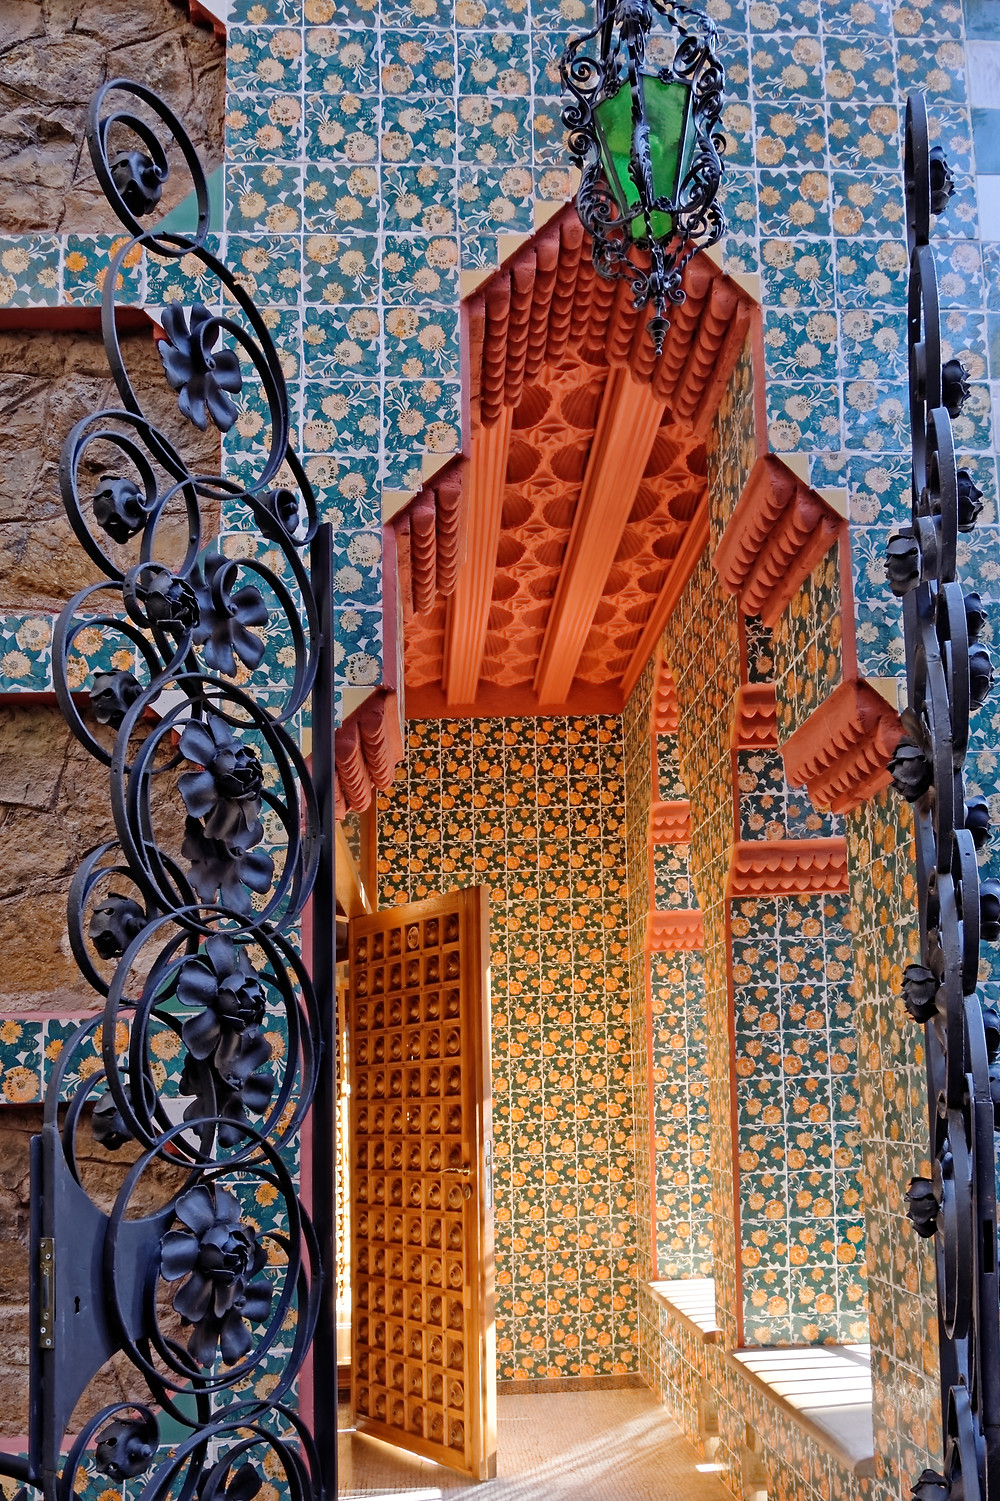 marigolds on the exterior and interior of Casa Vicens